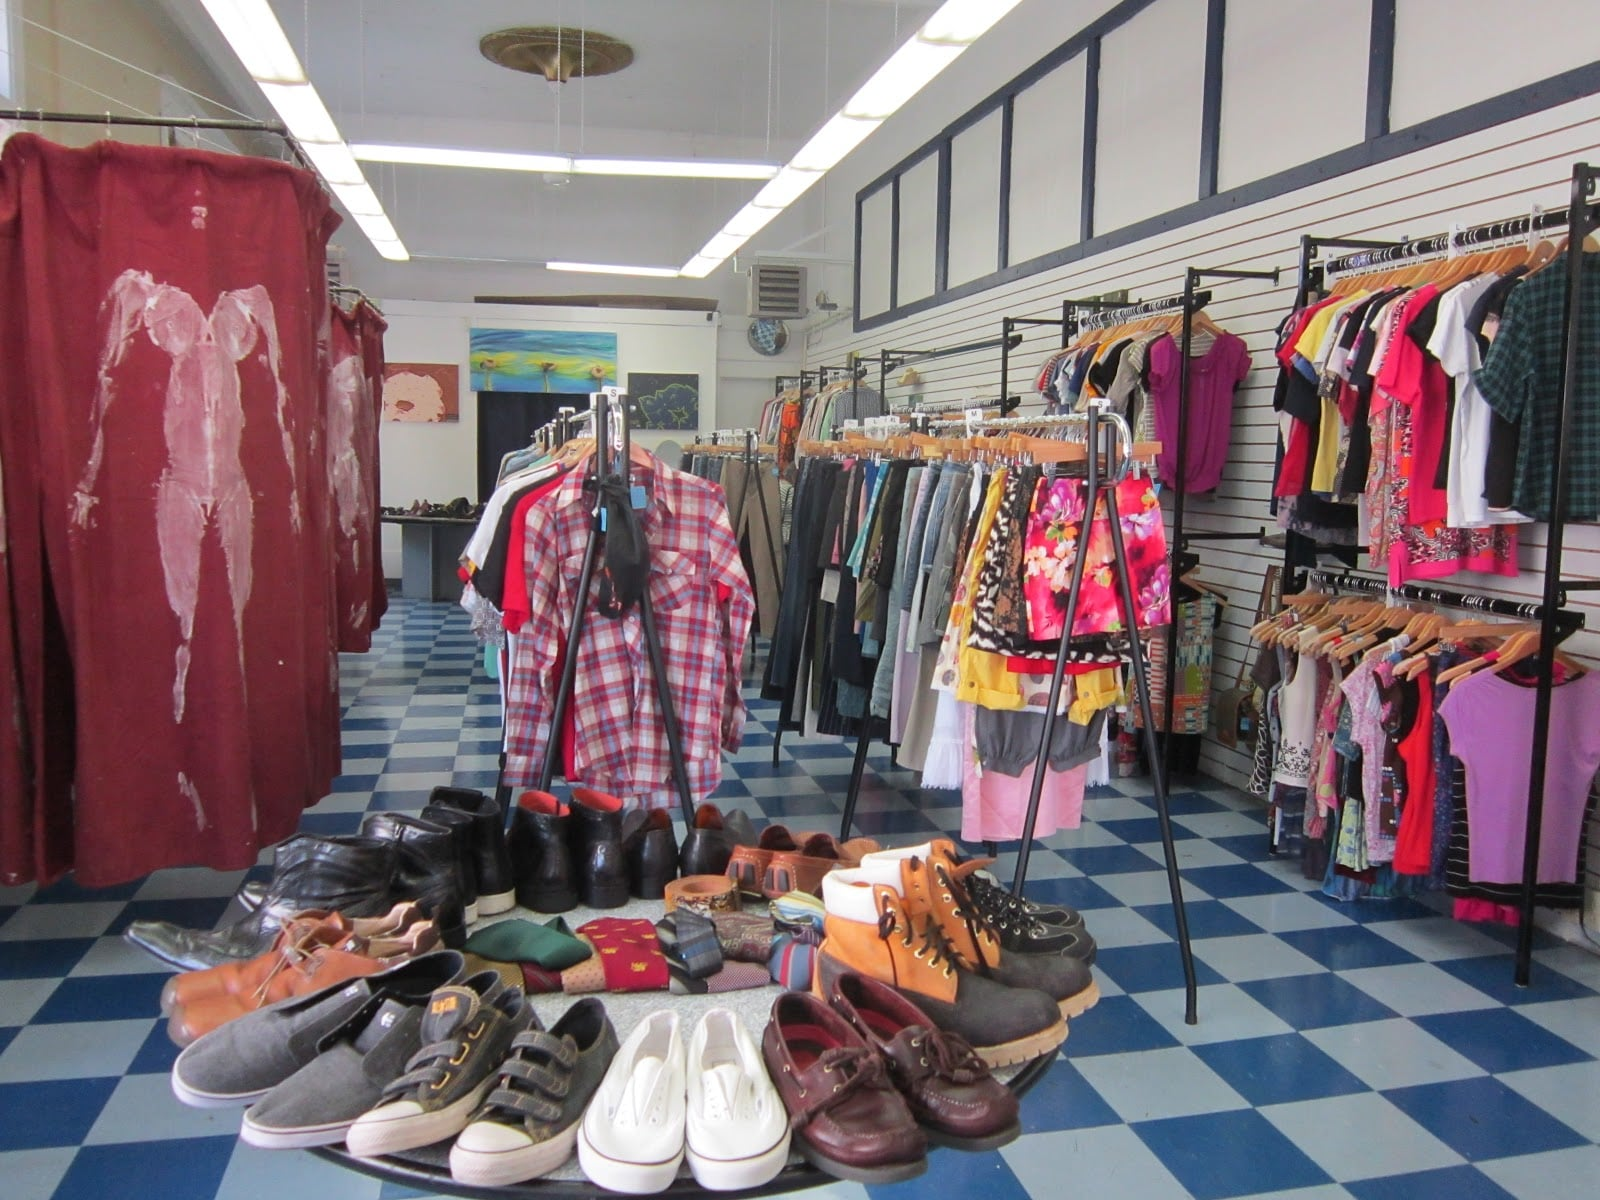 Clothes Minded boutique with shoes and clothes that line the racks